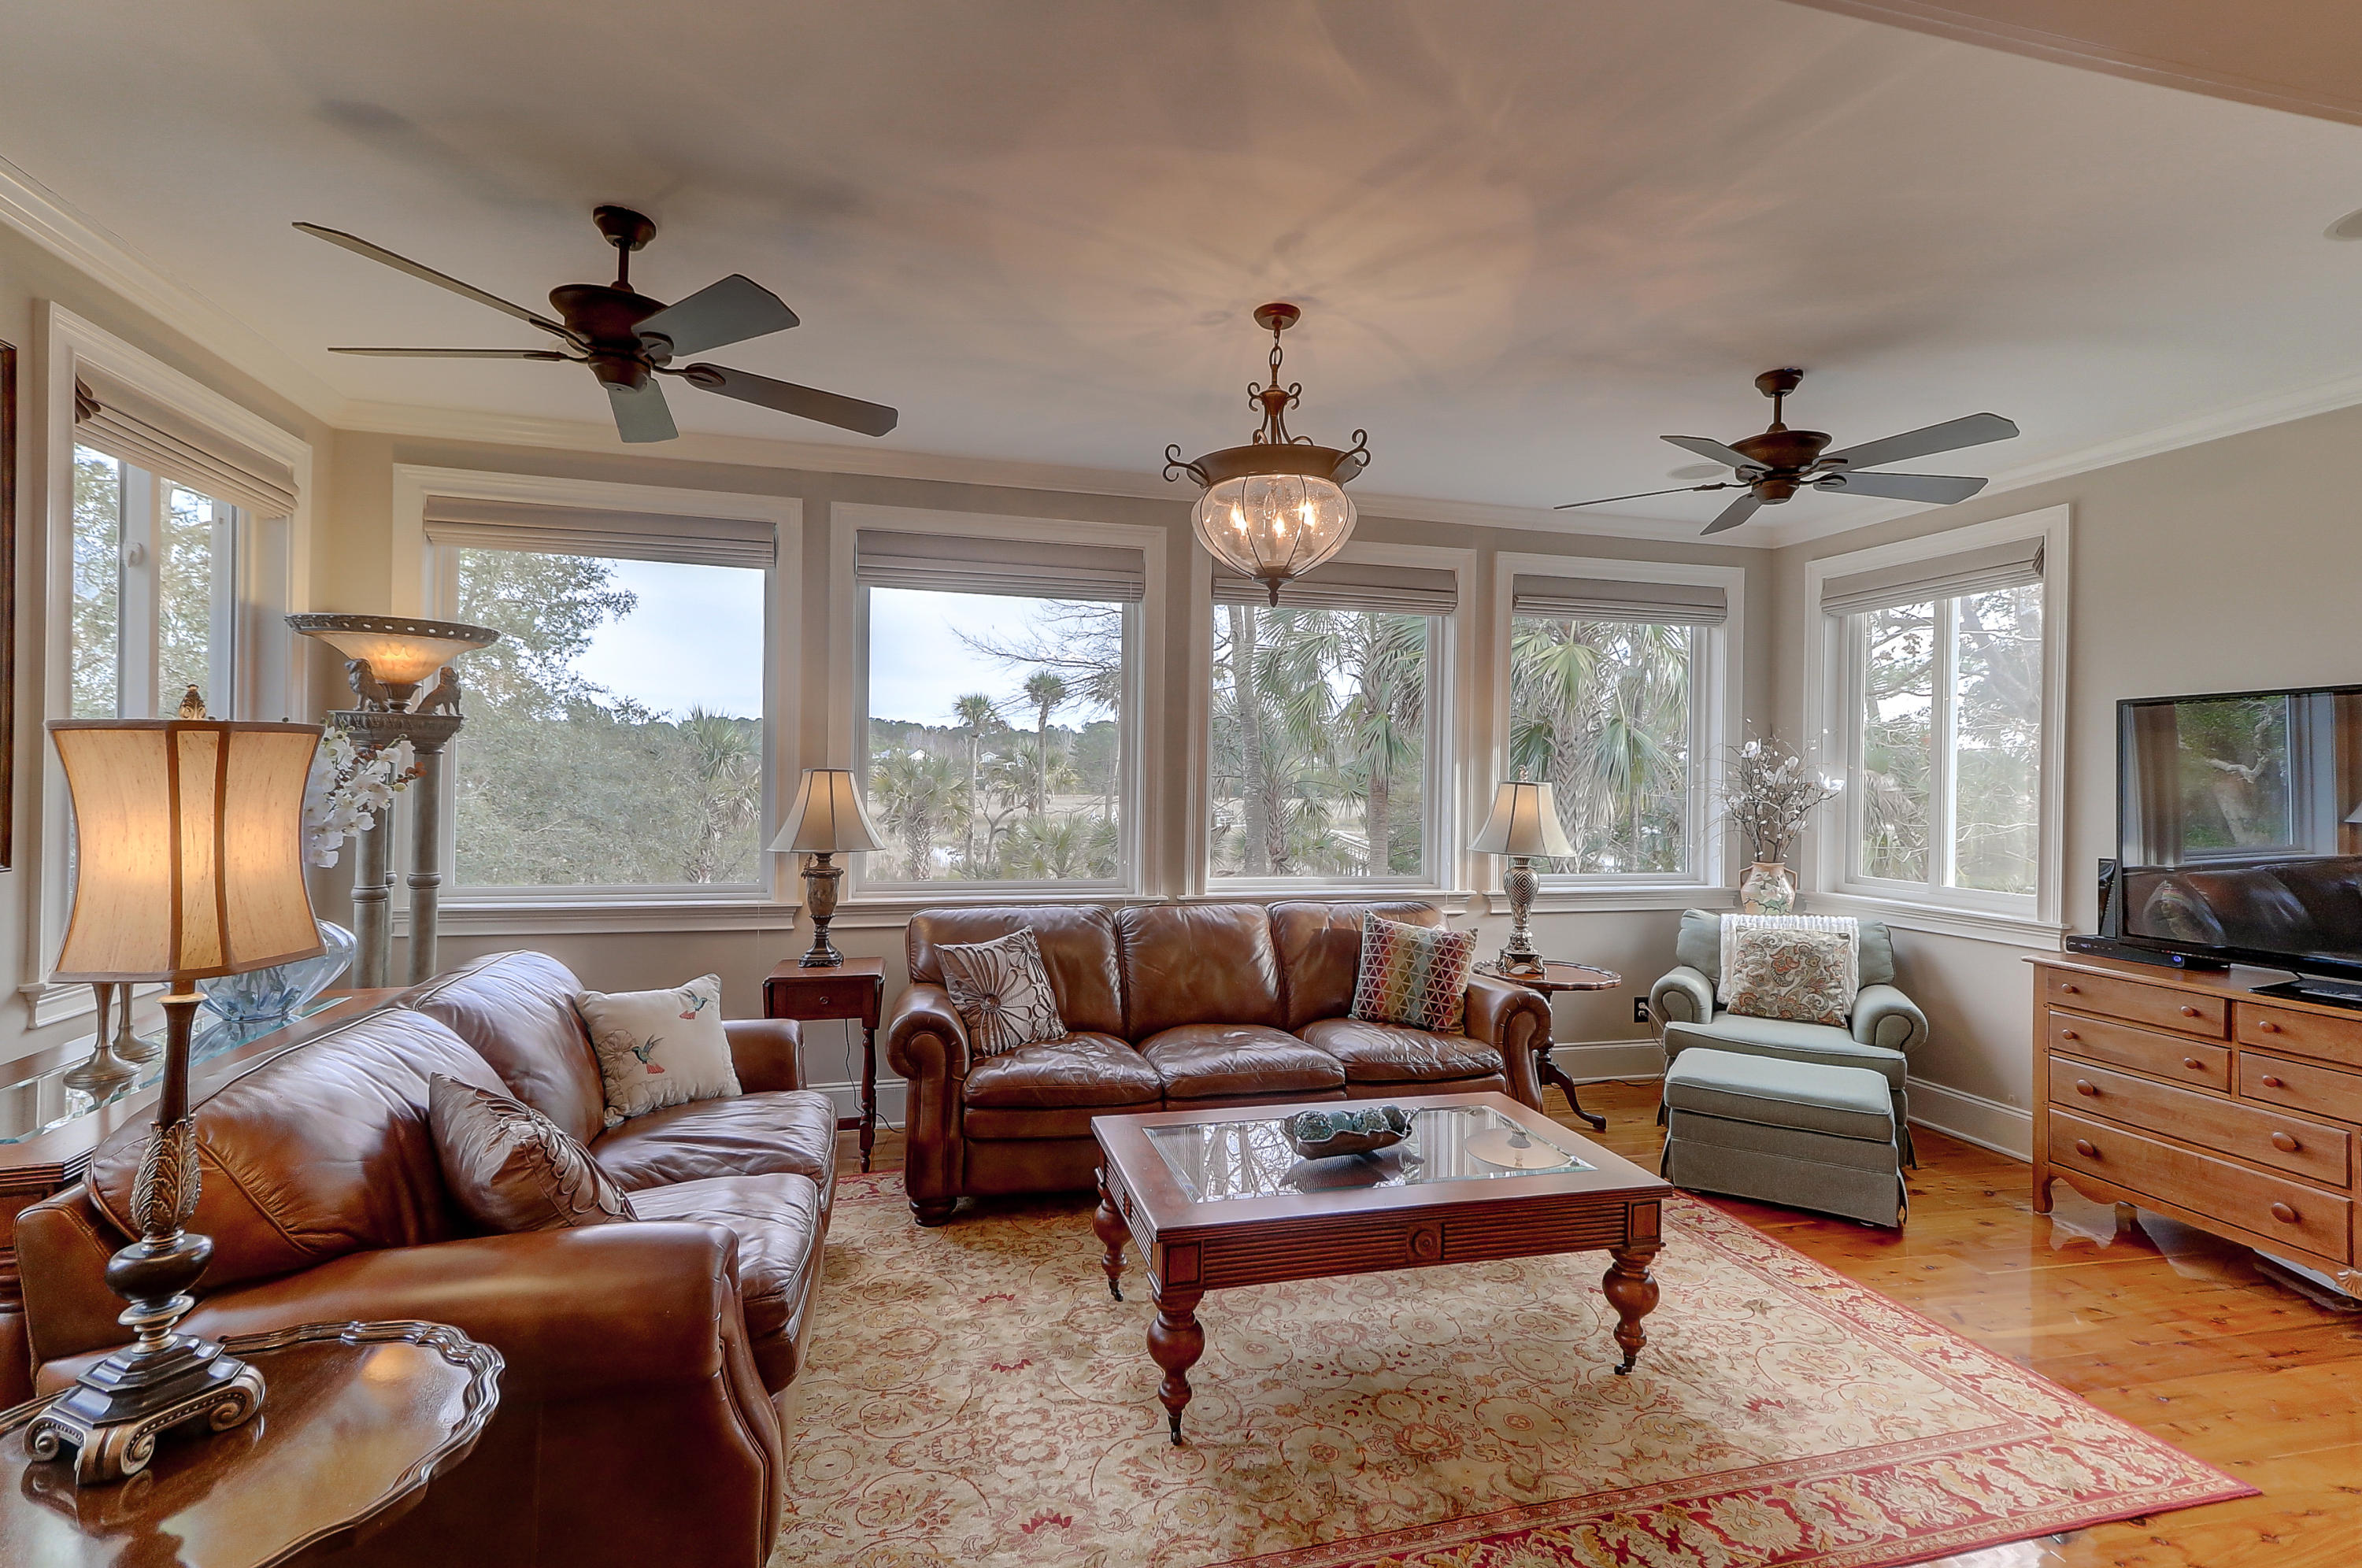 Dunes West Homes For Sale - 1764 Greenspoint, Mount Pleasant, SC - 47